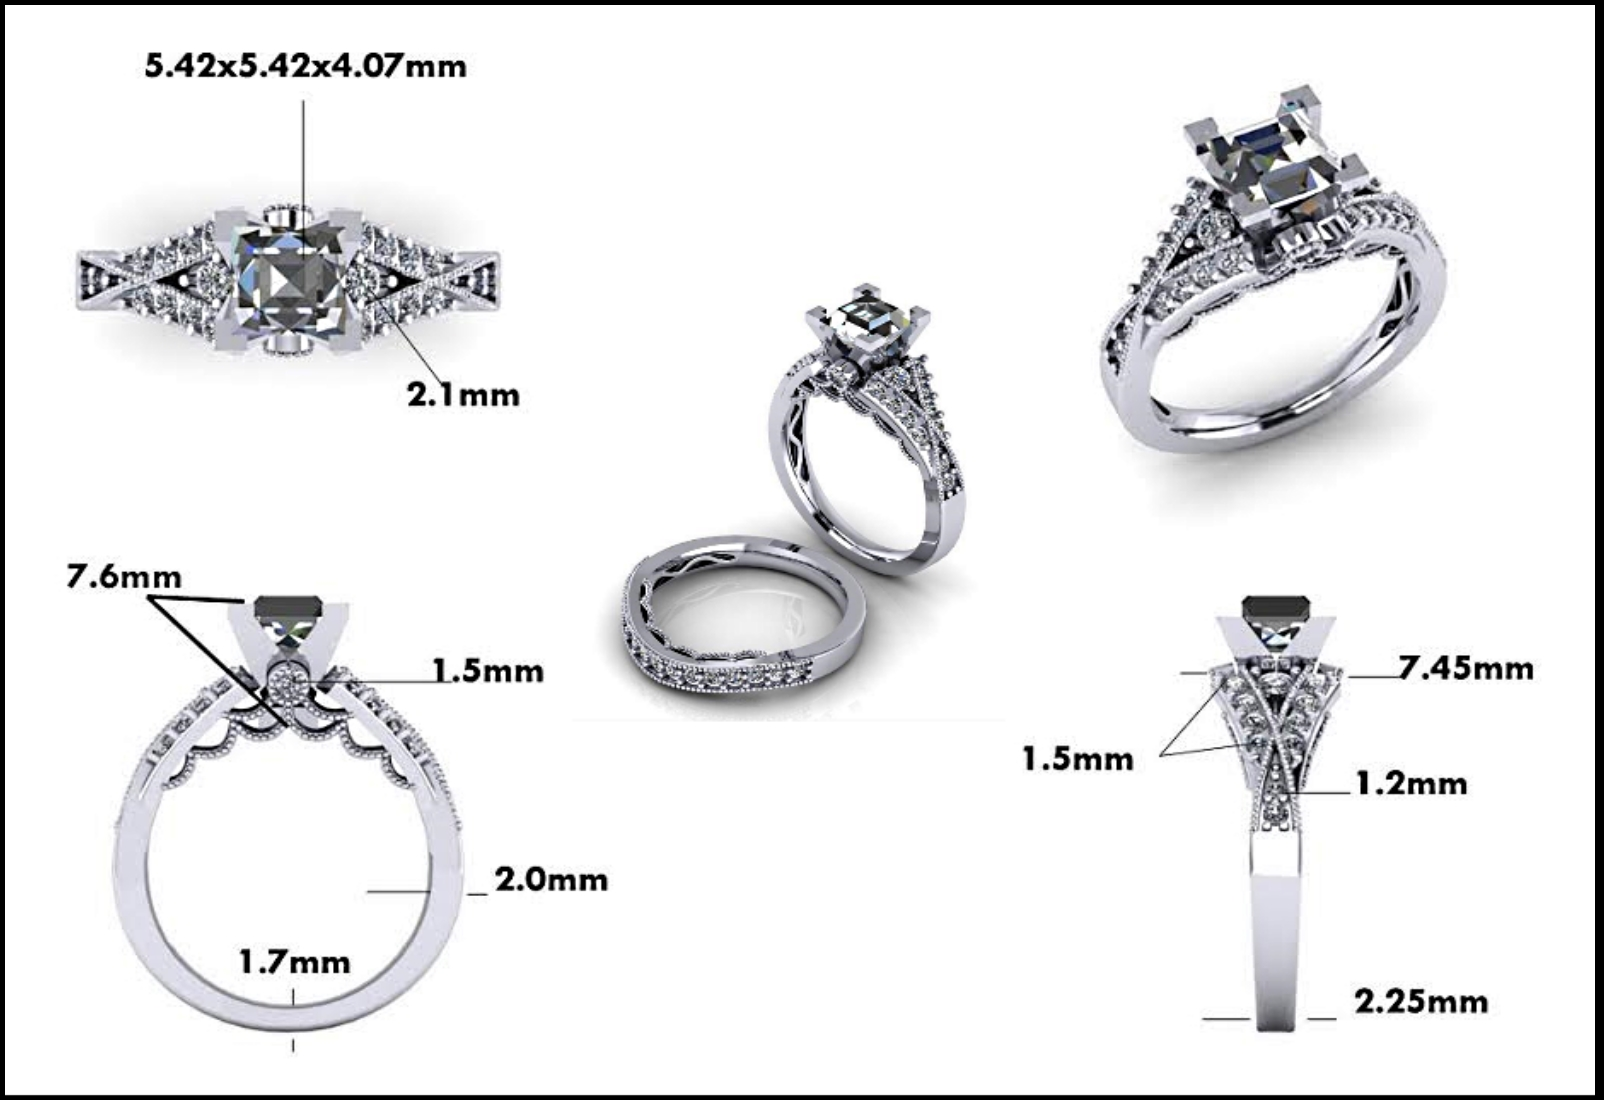 Custom Jewelry Design - Mitchum Jewelers - Image 23